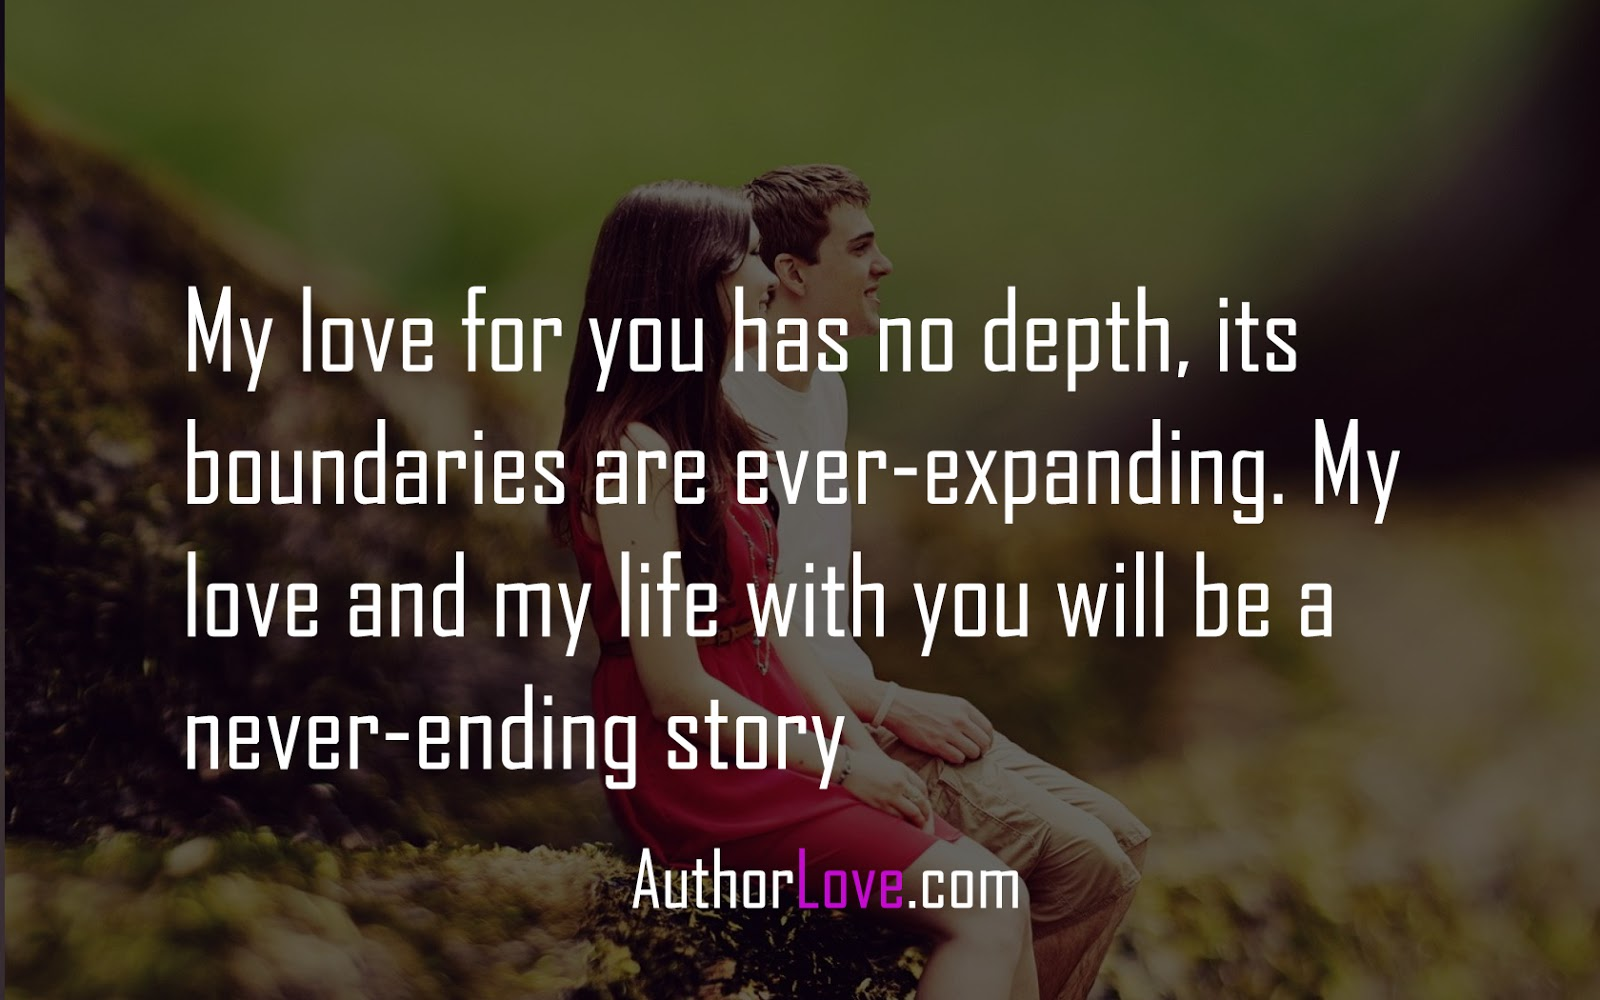 Endless Love Quotes My Love Is Endless For U Quotes My Love For You Is Endless.